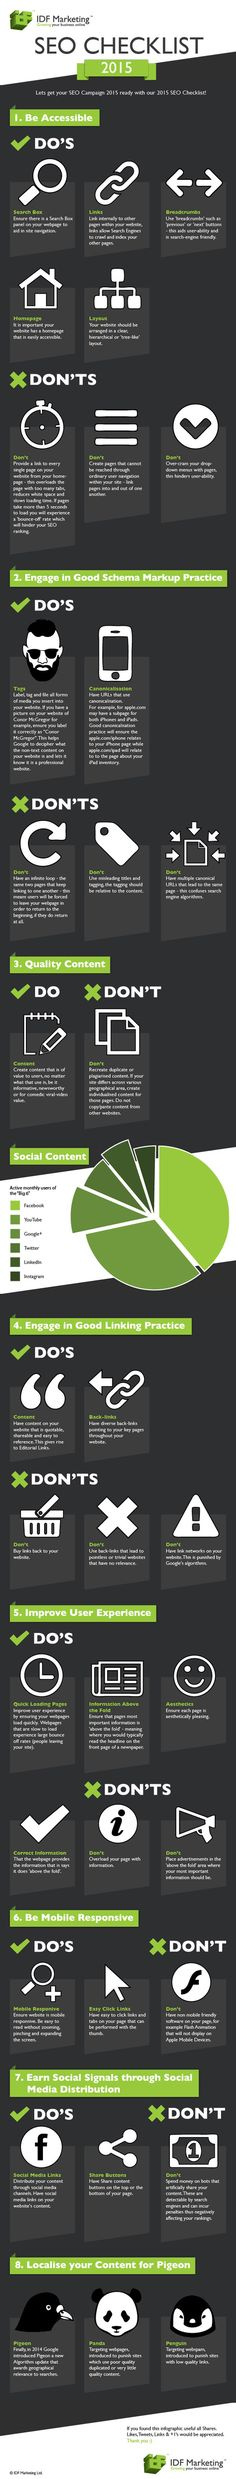 32 Do's and Don'ts for a Successful SEO Strategy in 2015 #Infographic